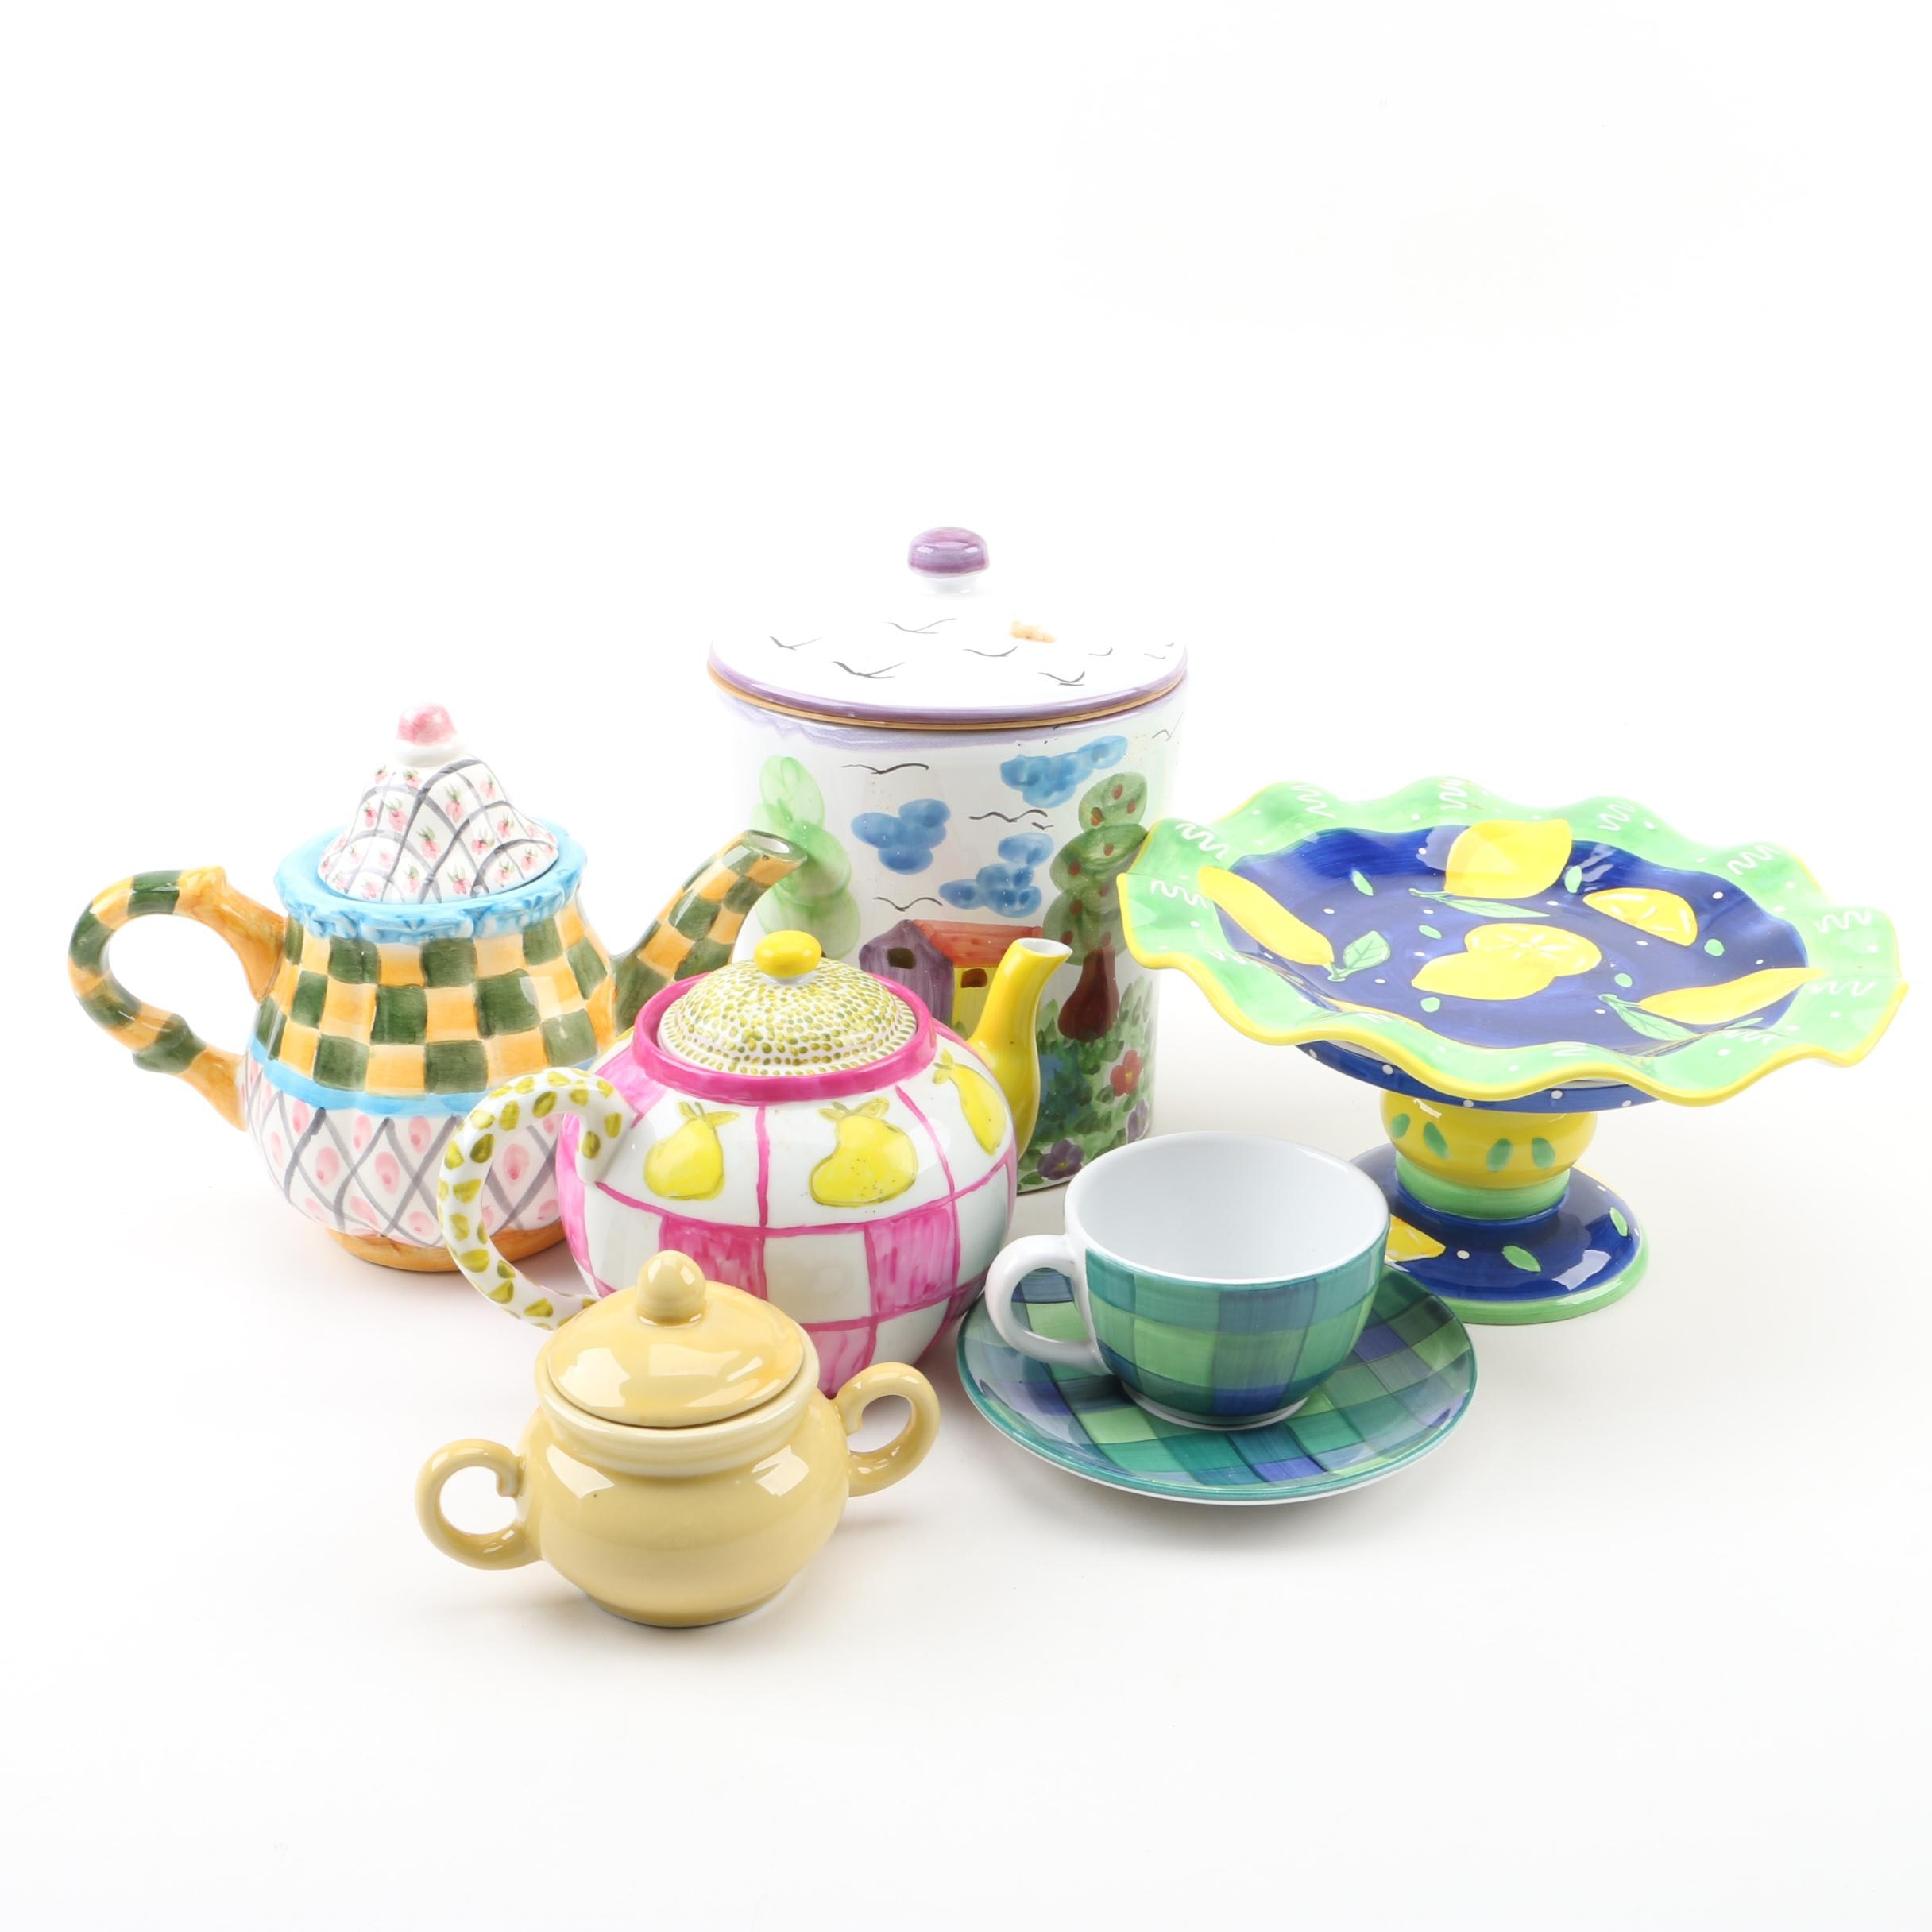 Colorful Patterned Teapots and Table Accessories Including Williams-Sonoma